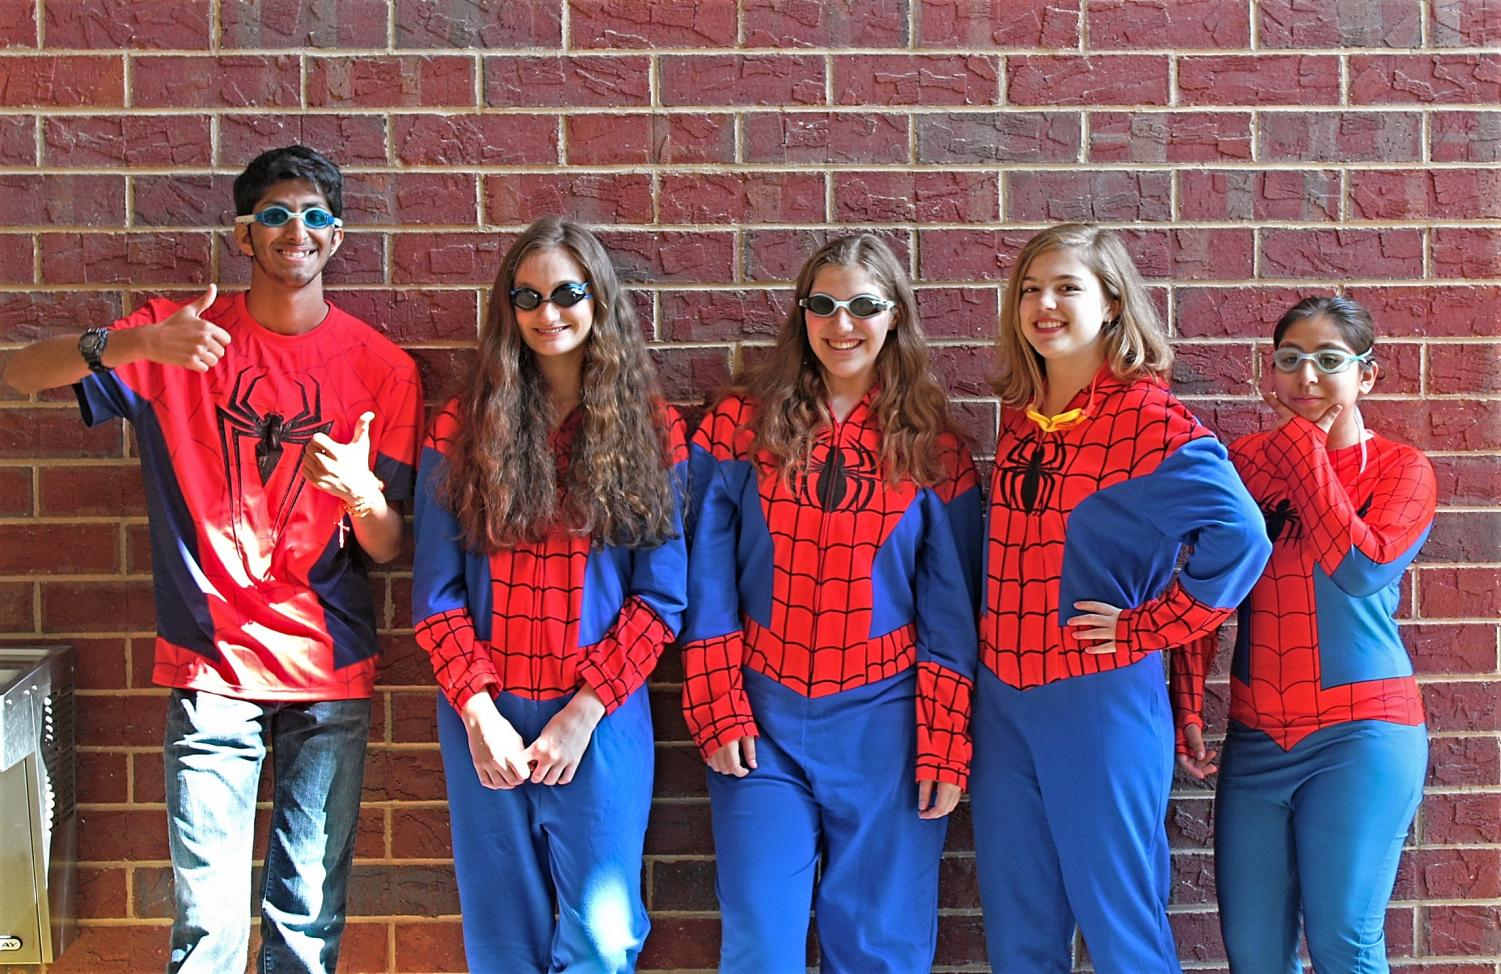 Senior Aditya Sayal, senior Dakota Pasley, junior Caroline Fettes, junior Isabella Amorine and junior Julissa Duarte are centrality doing it for the Vine, as they are dressed up as the